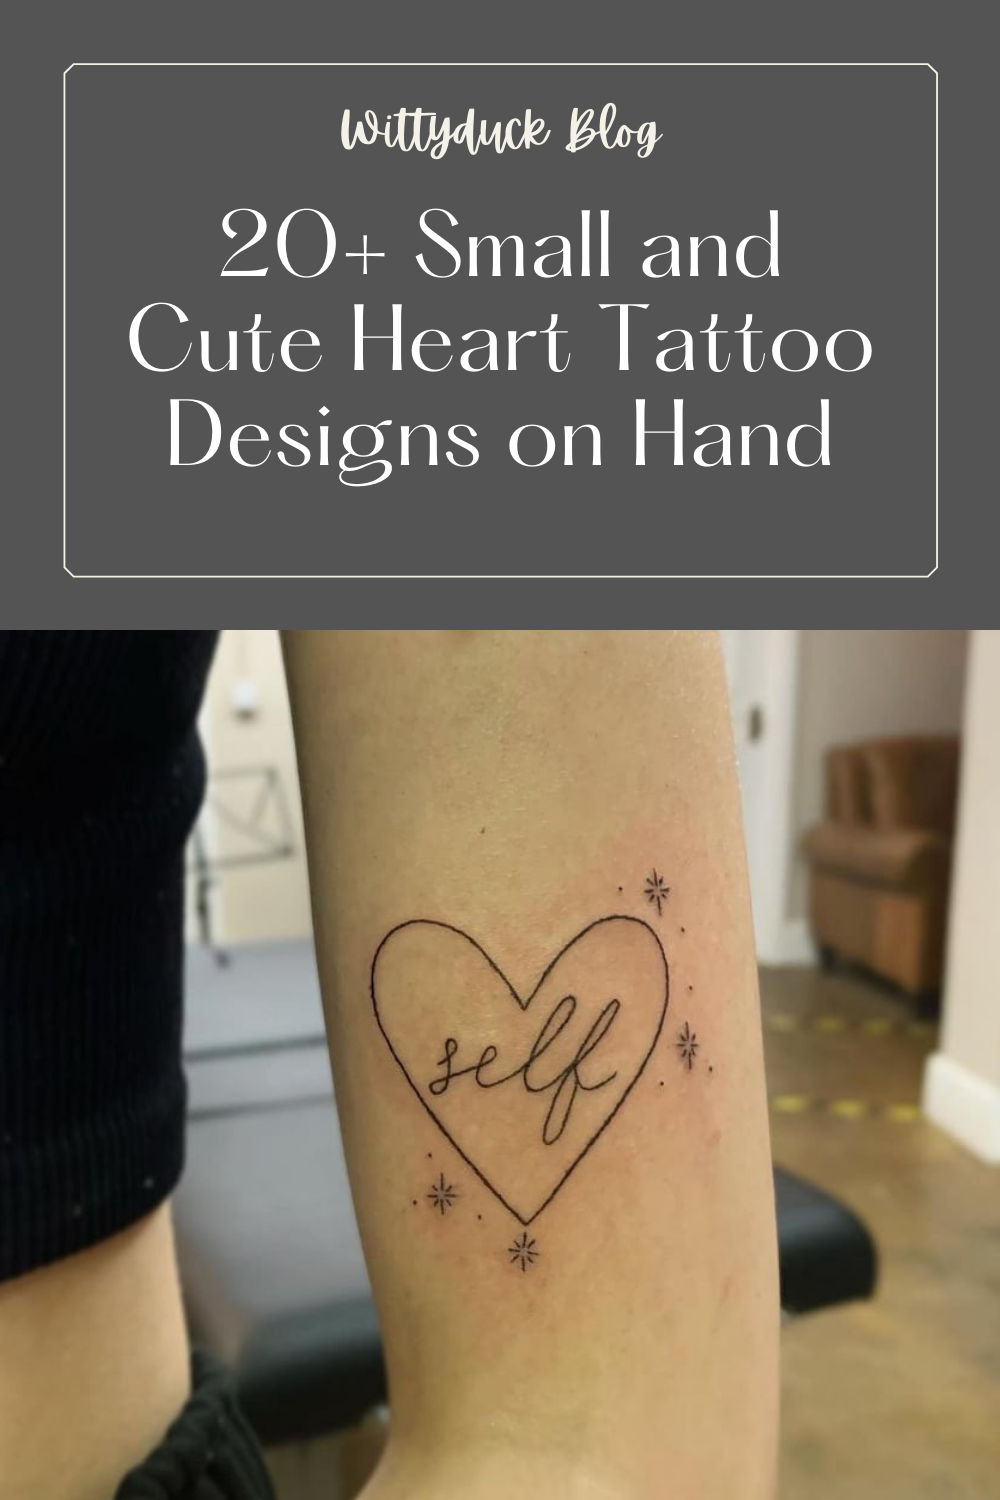 20+ Small and Cute Heart Tattoo Designs on Hand   Wittyduck